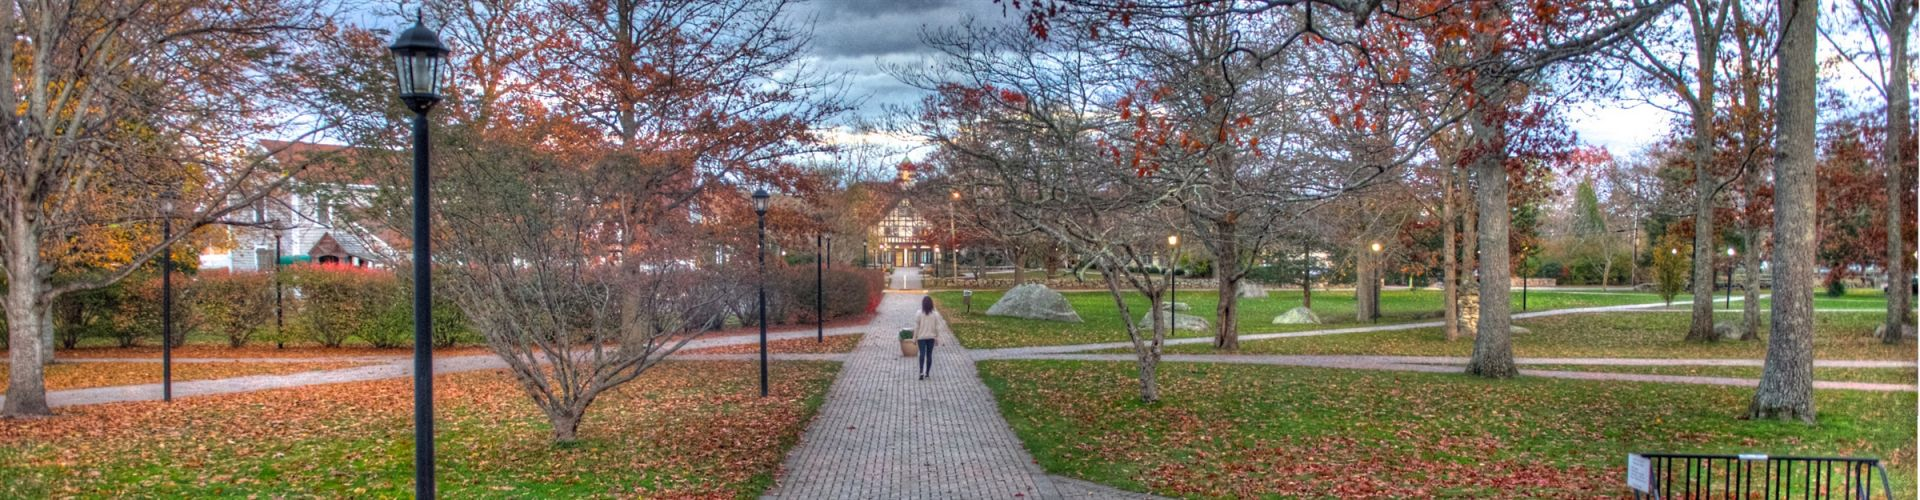 Fall view of Lillard Hall & Dining Hall at Tabor Academy